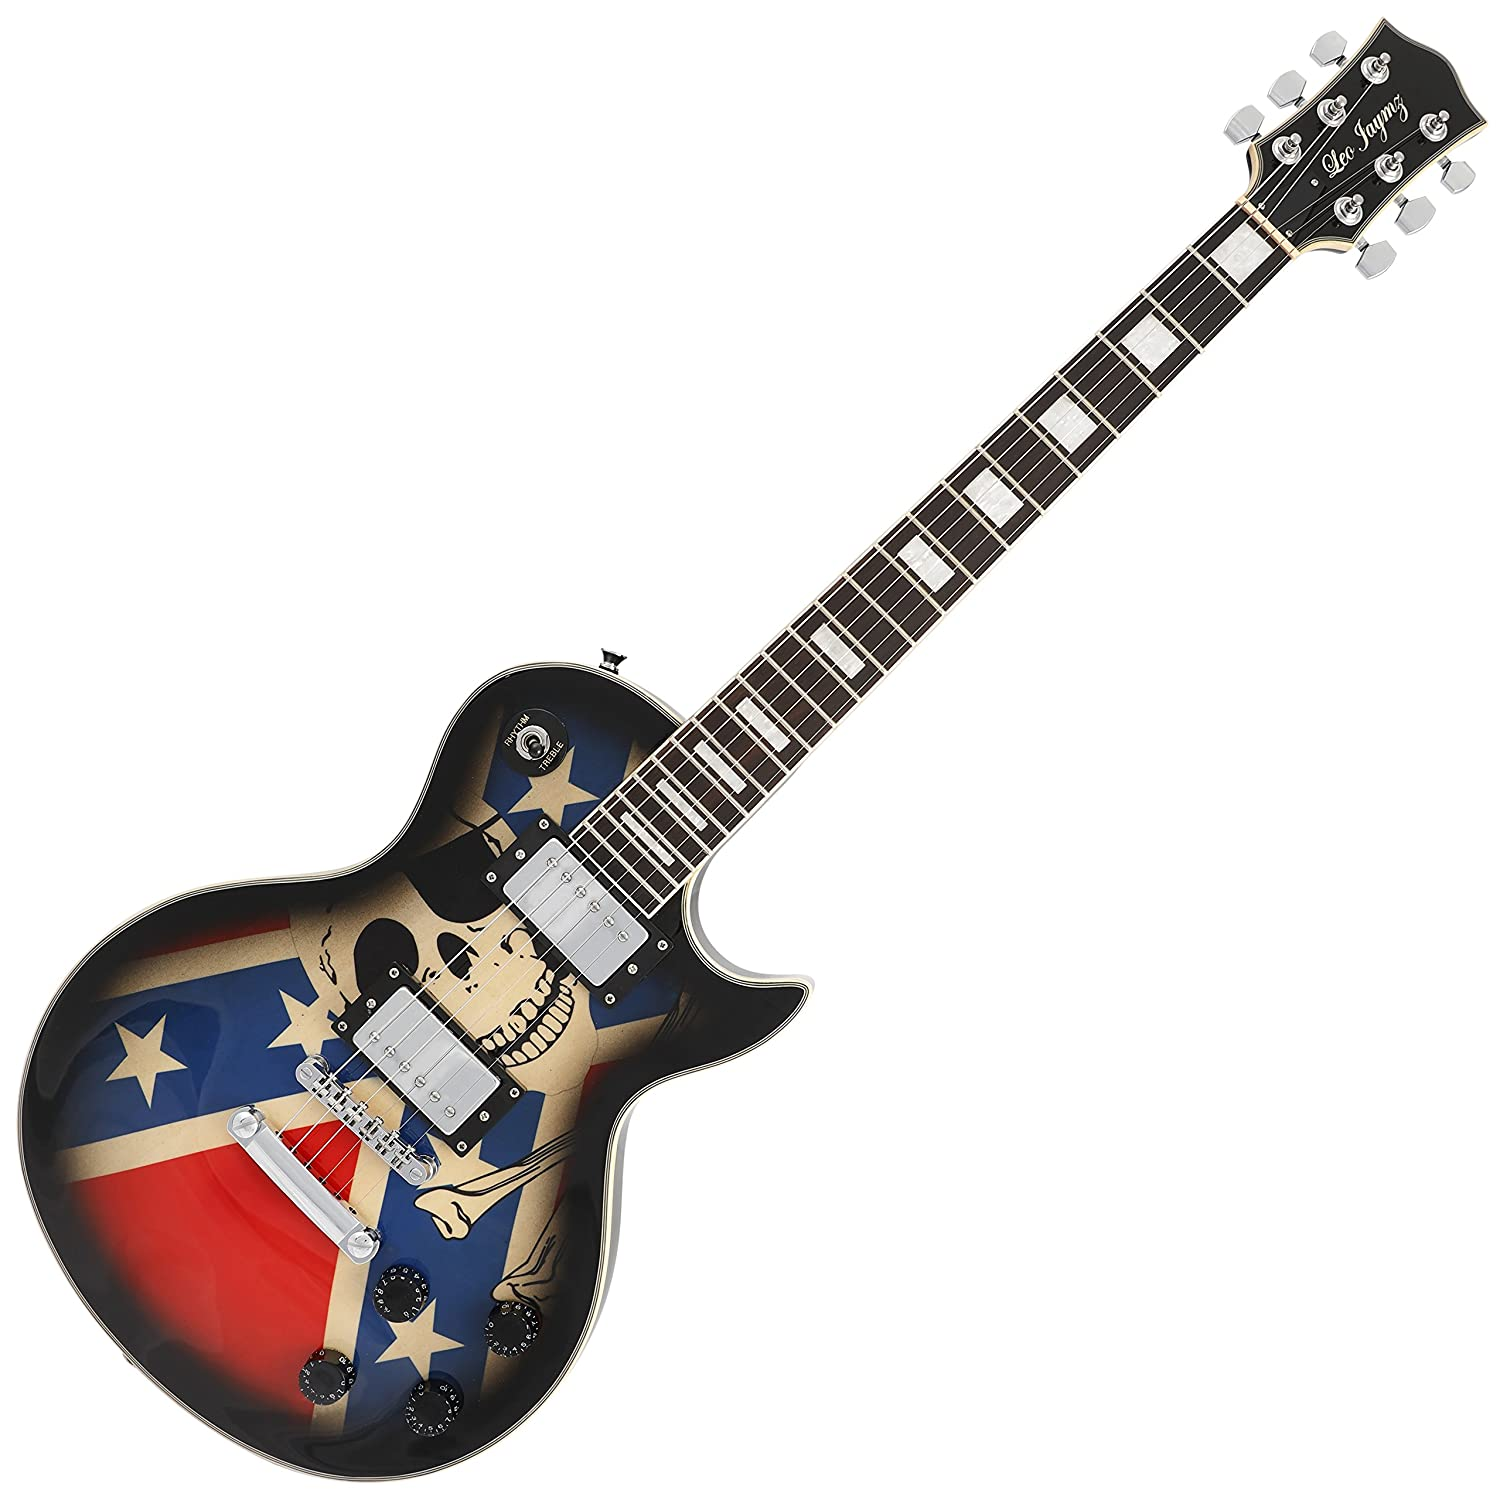 Leo Jaymz Single cut curved top GROVER machine heads Electric guitar full size with flag sticker design with high gloss color, include soft bag and extra Jaymz Light String set with Colorful Ball End HYGENT MUSICAL INSTRUMENT CO. LTD SC-US Flag